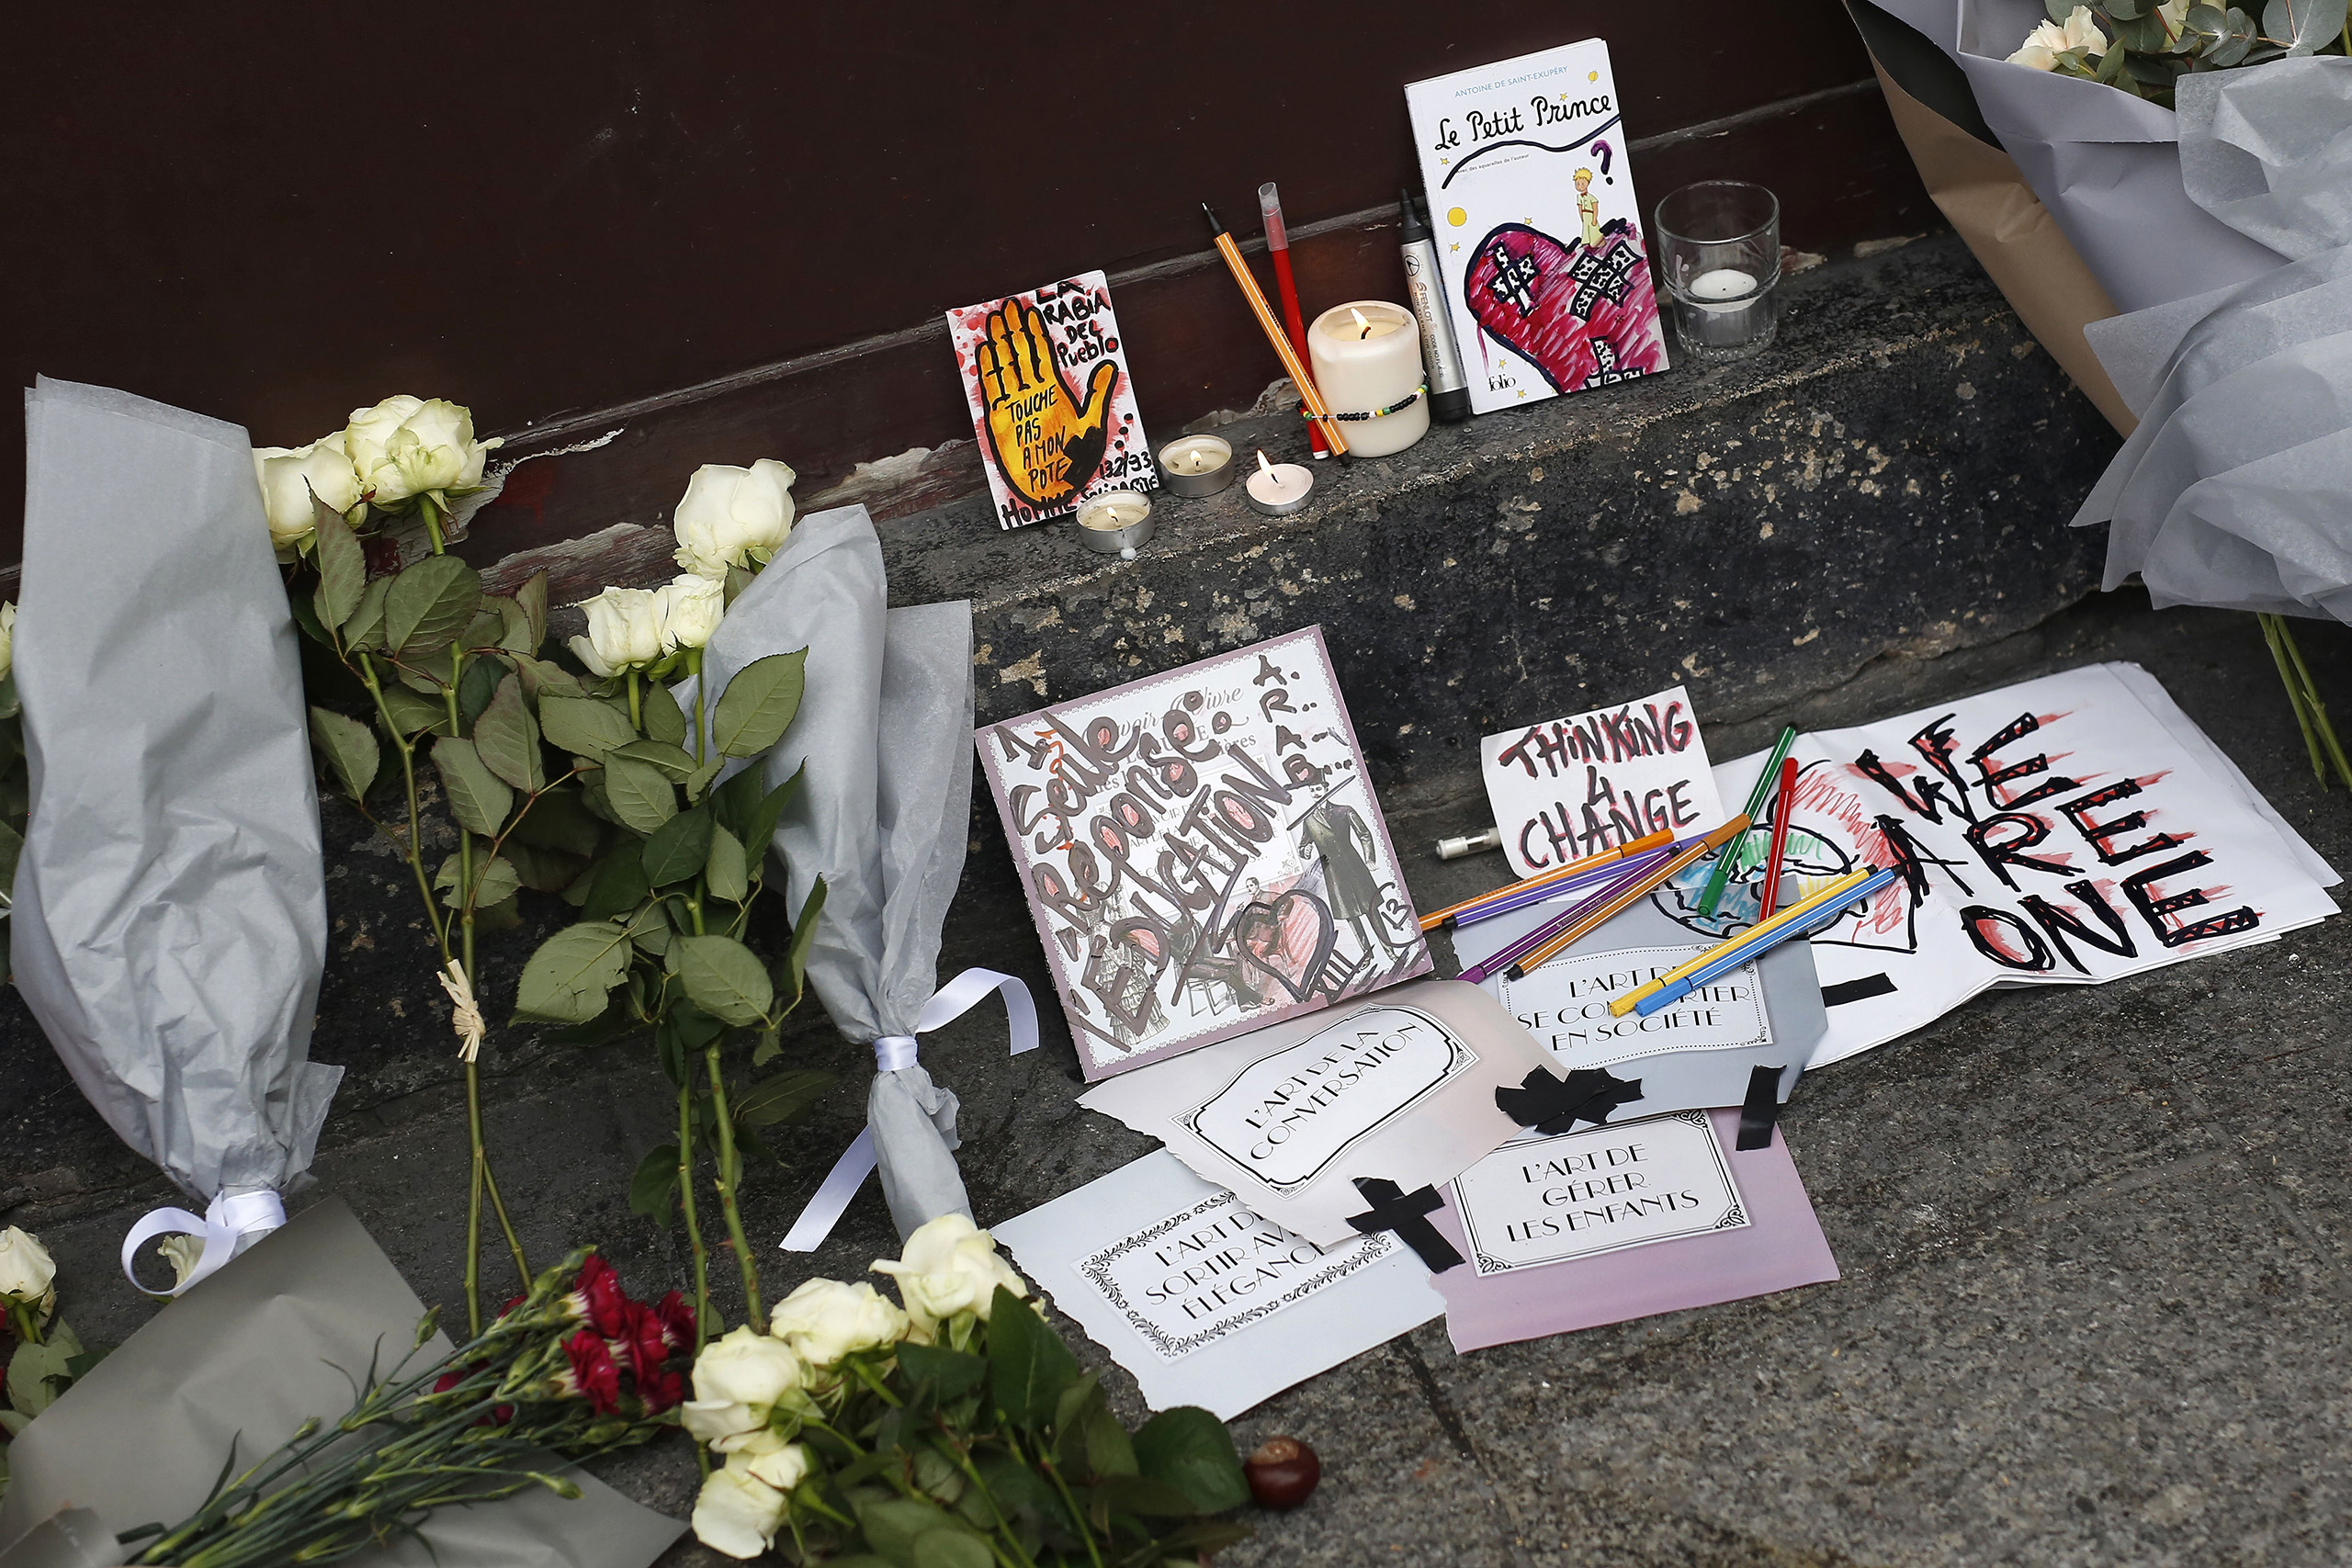 Cards, candles and flowers are placed in front of the Carillon cafe in Paris on Saturday Nov. 14, 2015.